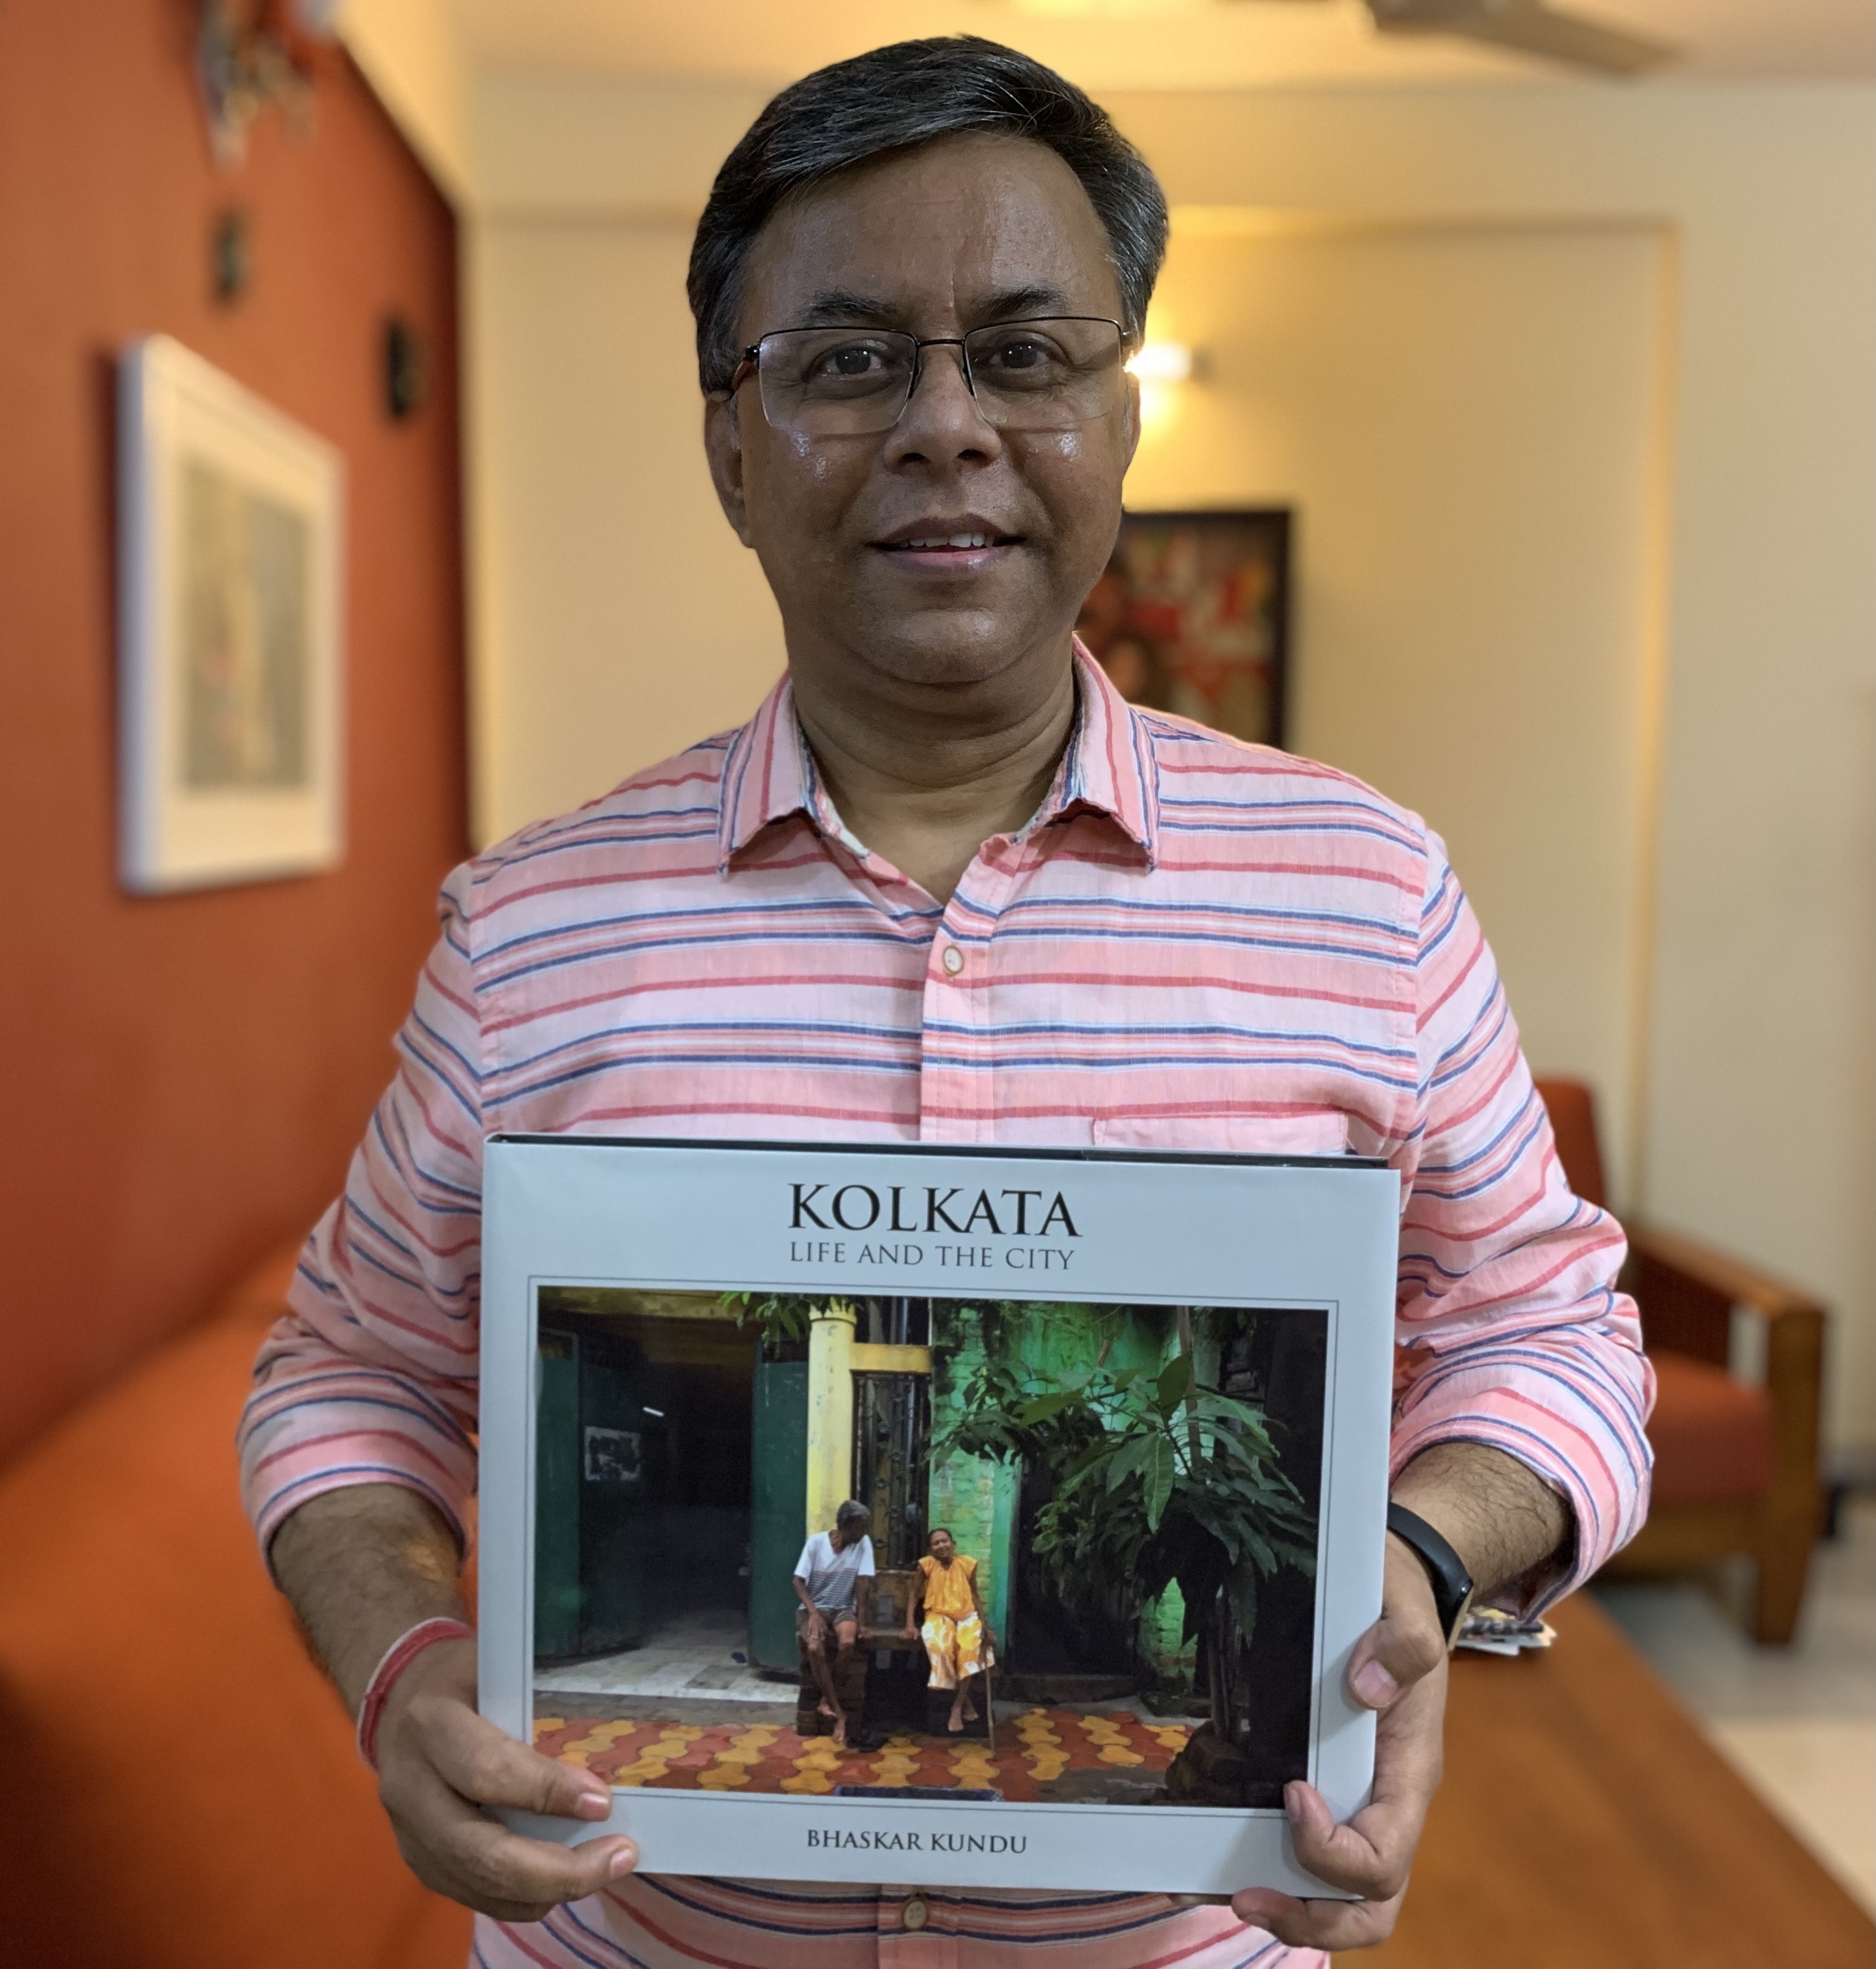 2. Bhaskar Kundu, a celebrated street photographer in his own right proudly displaying the result of years of passion, dedication and hardowrk.